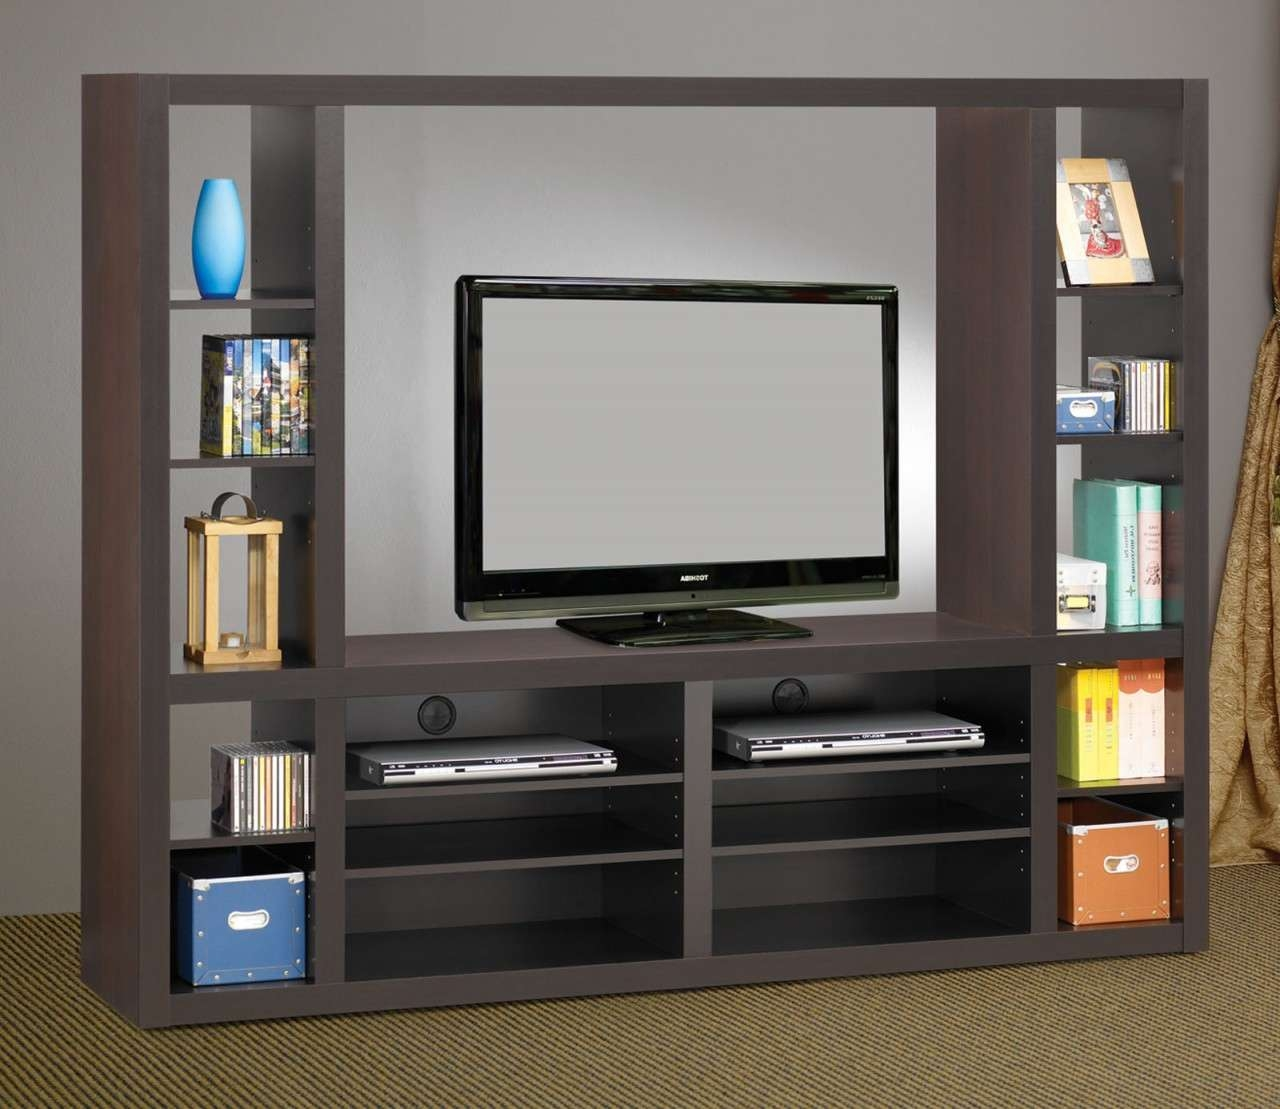 Flat Screen Tv Wall Unit Idea – Wall Units Design Ideas Intended For Modern Tv Cabinets For Flat Screens (View 4 of 20)